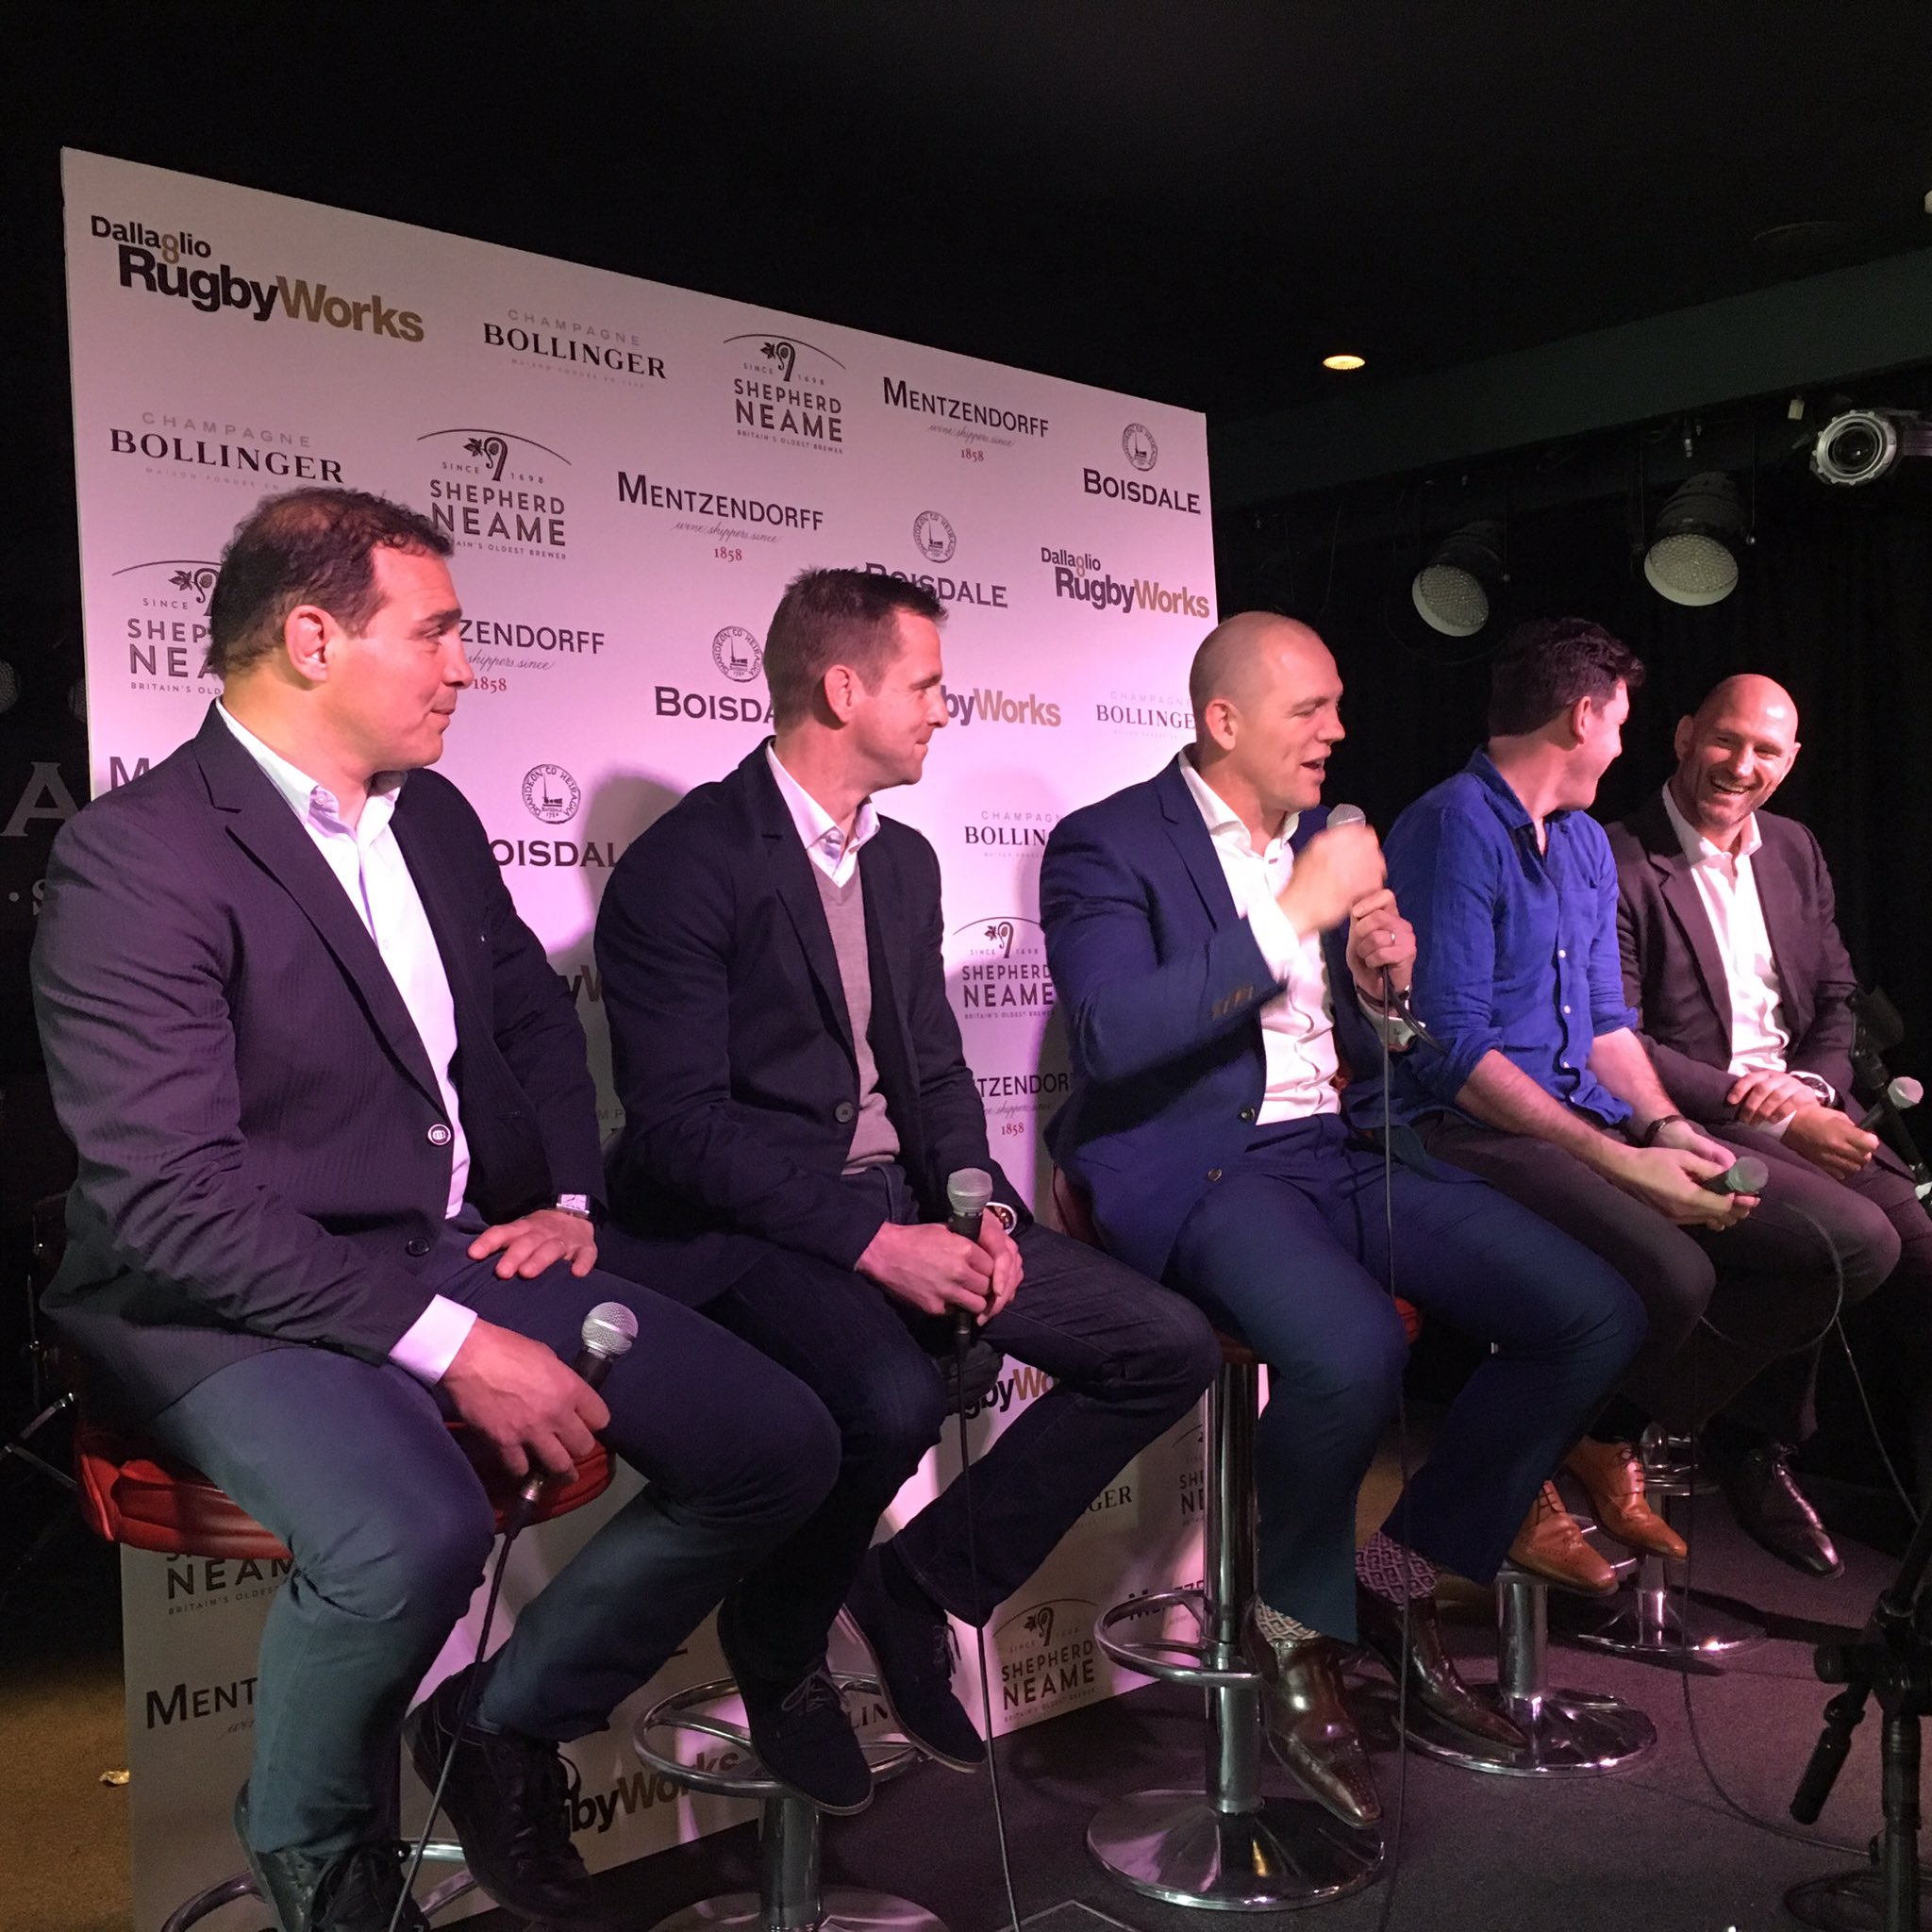 What an awesome line up of rugby legends! And the stories... All in aid of #RugbyWorks @Boisdale https://t.co/u06locAllp